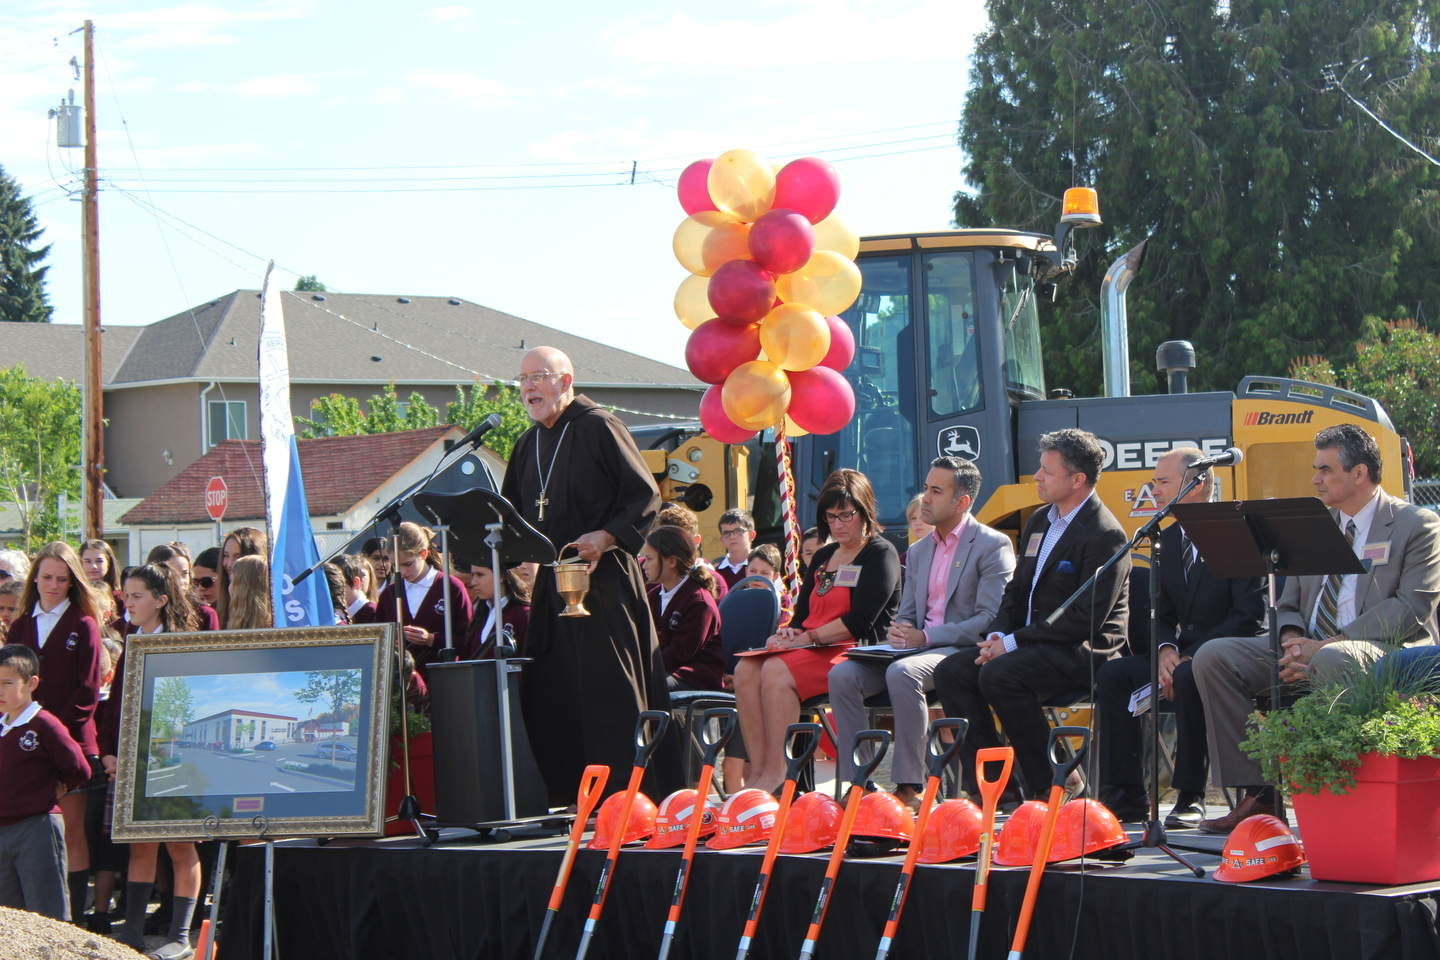 New St. Joseph's Breaking Ground